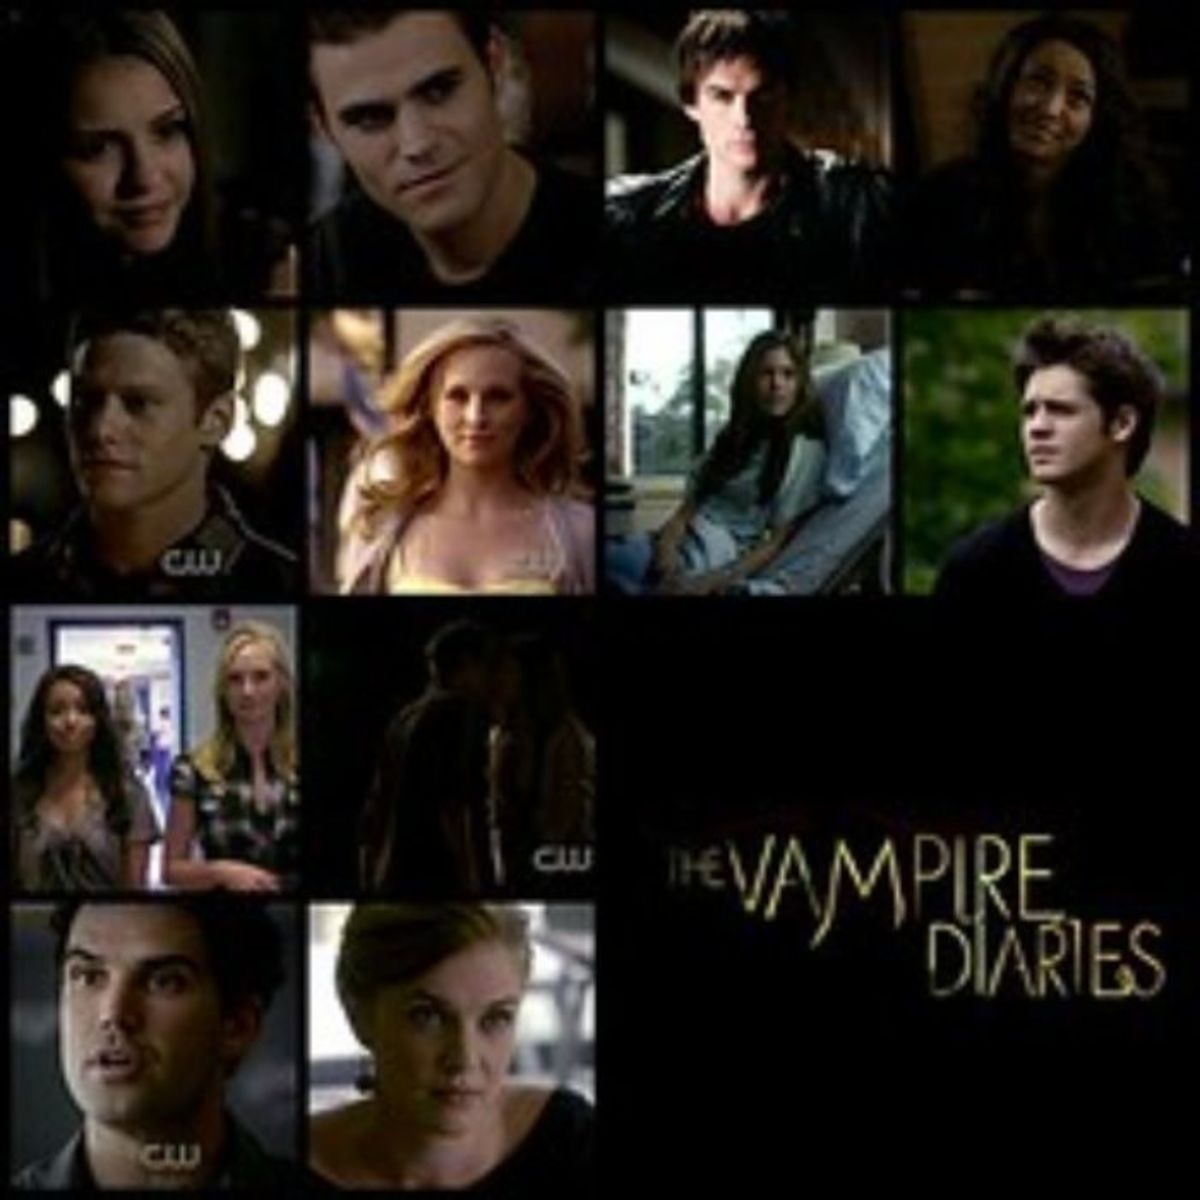 """""""''The Vampire Diaries'' collage :)"""" by мєℓιѕѕα'ѕ ƒℓι¢кя (: is licensed under CC BY 2.0"""